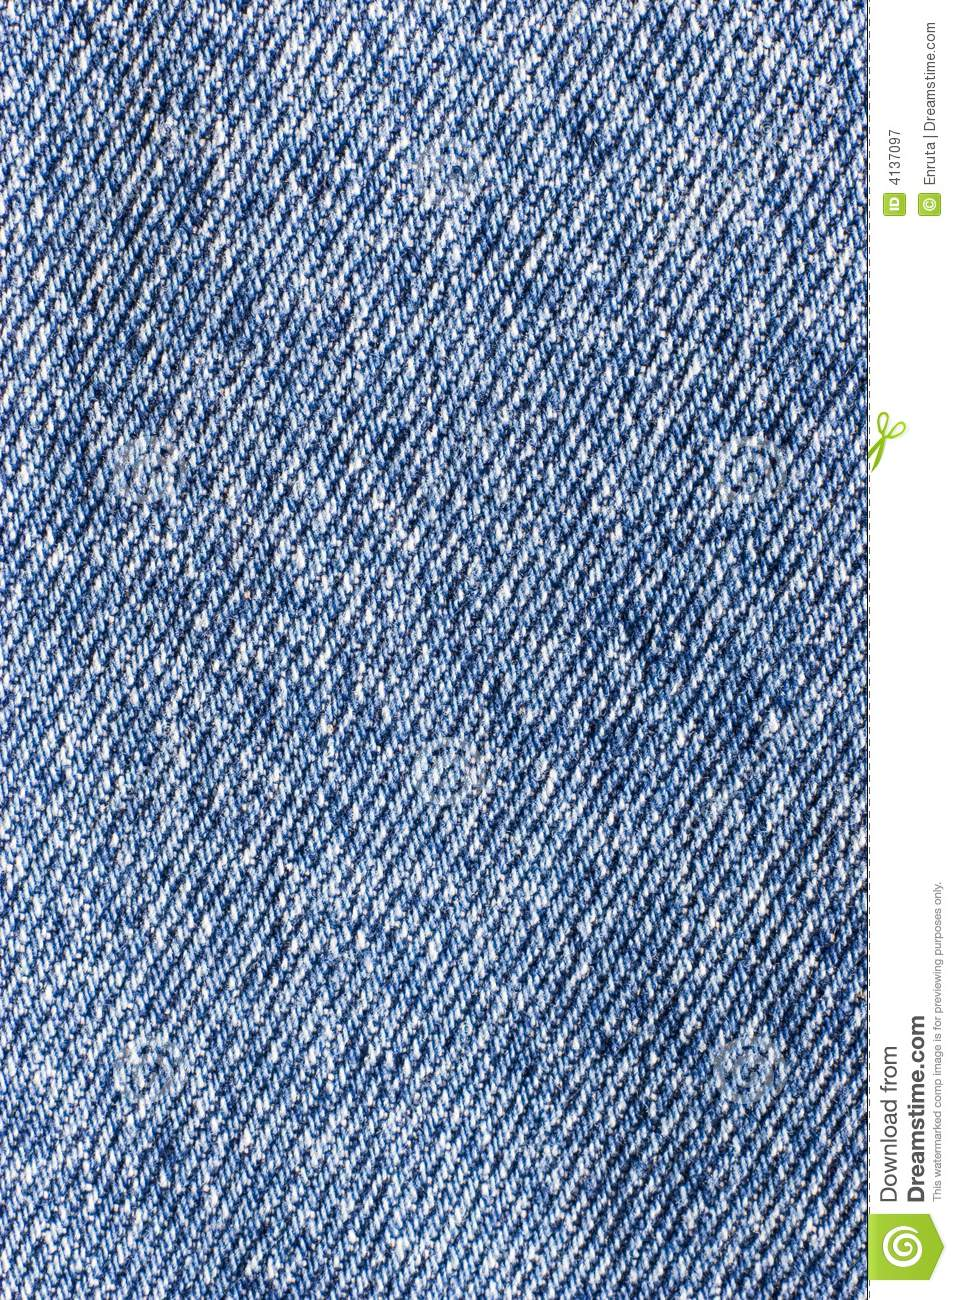 jeans pattern royalty free stock photography